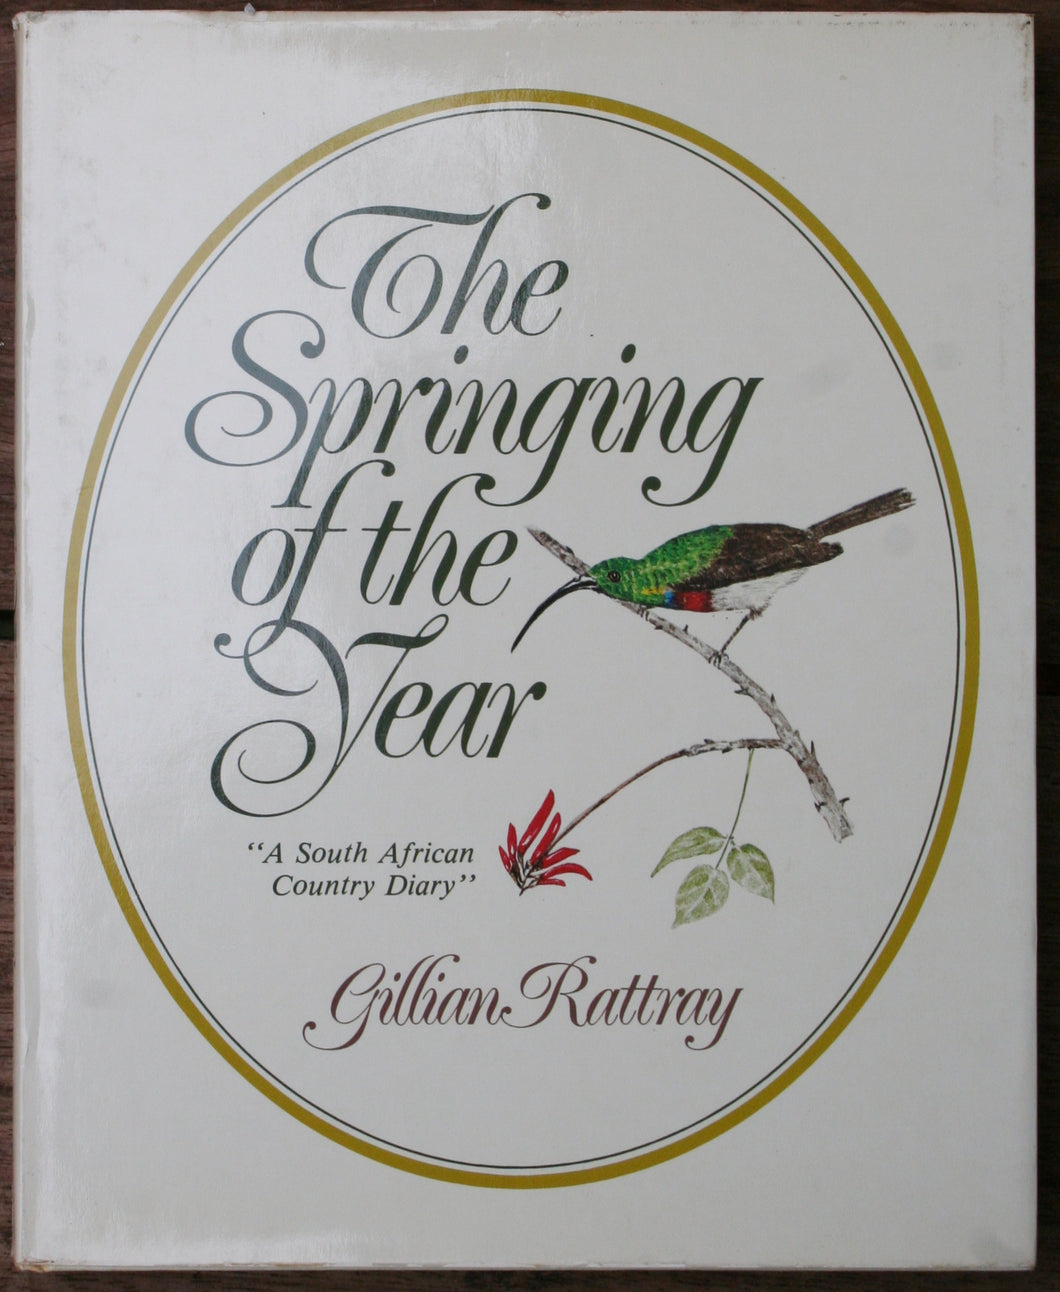 'THE SPRINGING OF THE YEAR' by Gillian Rattray